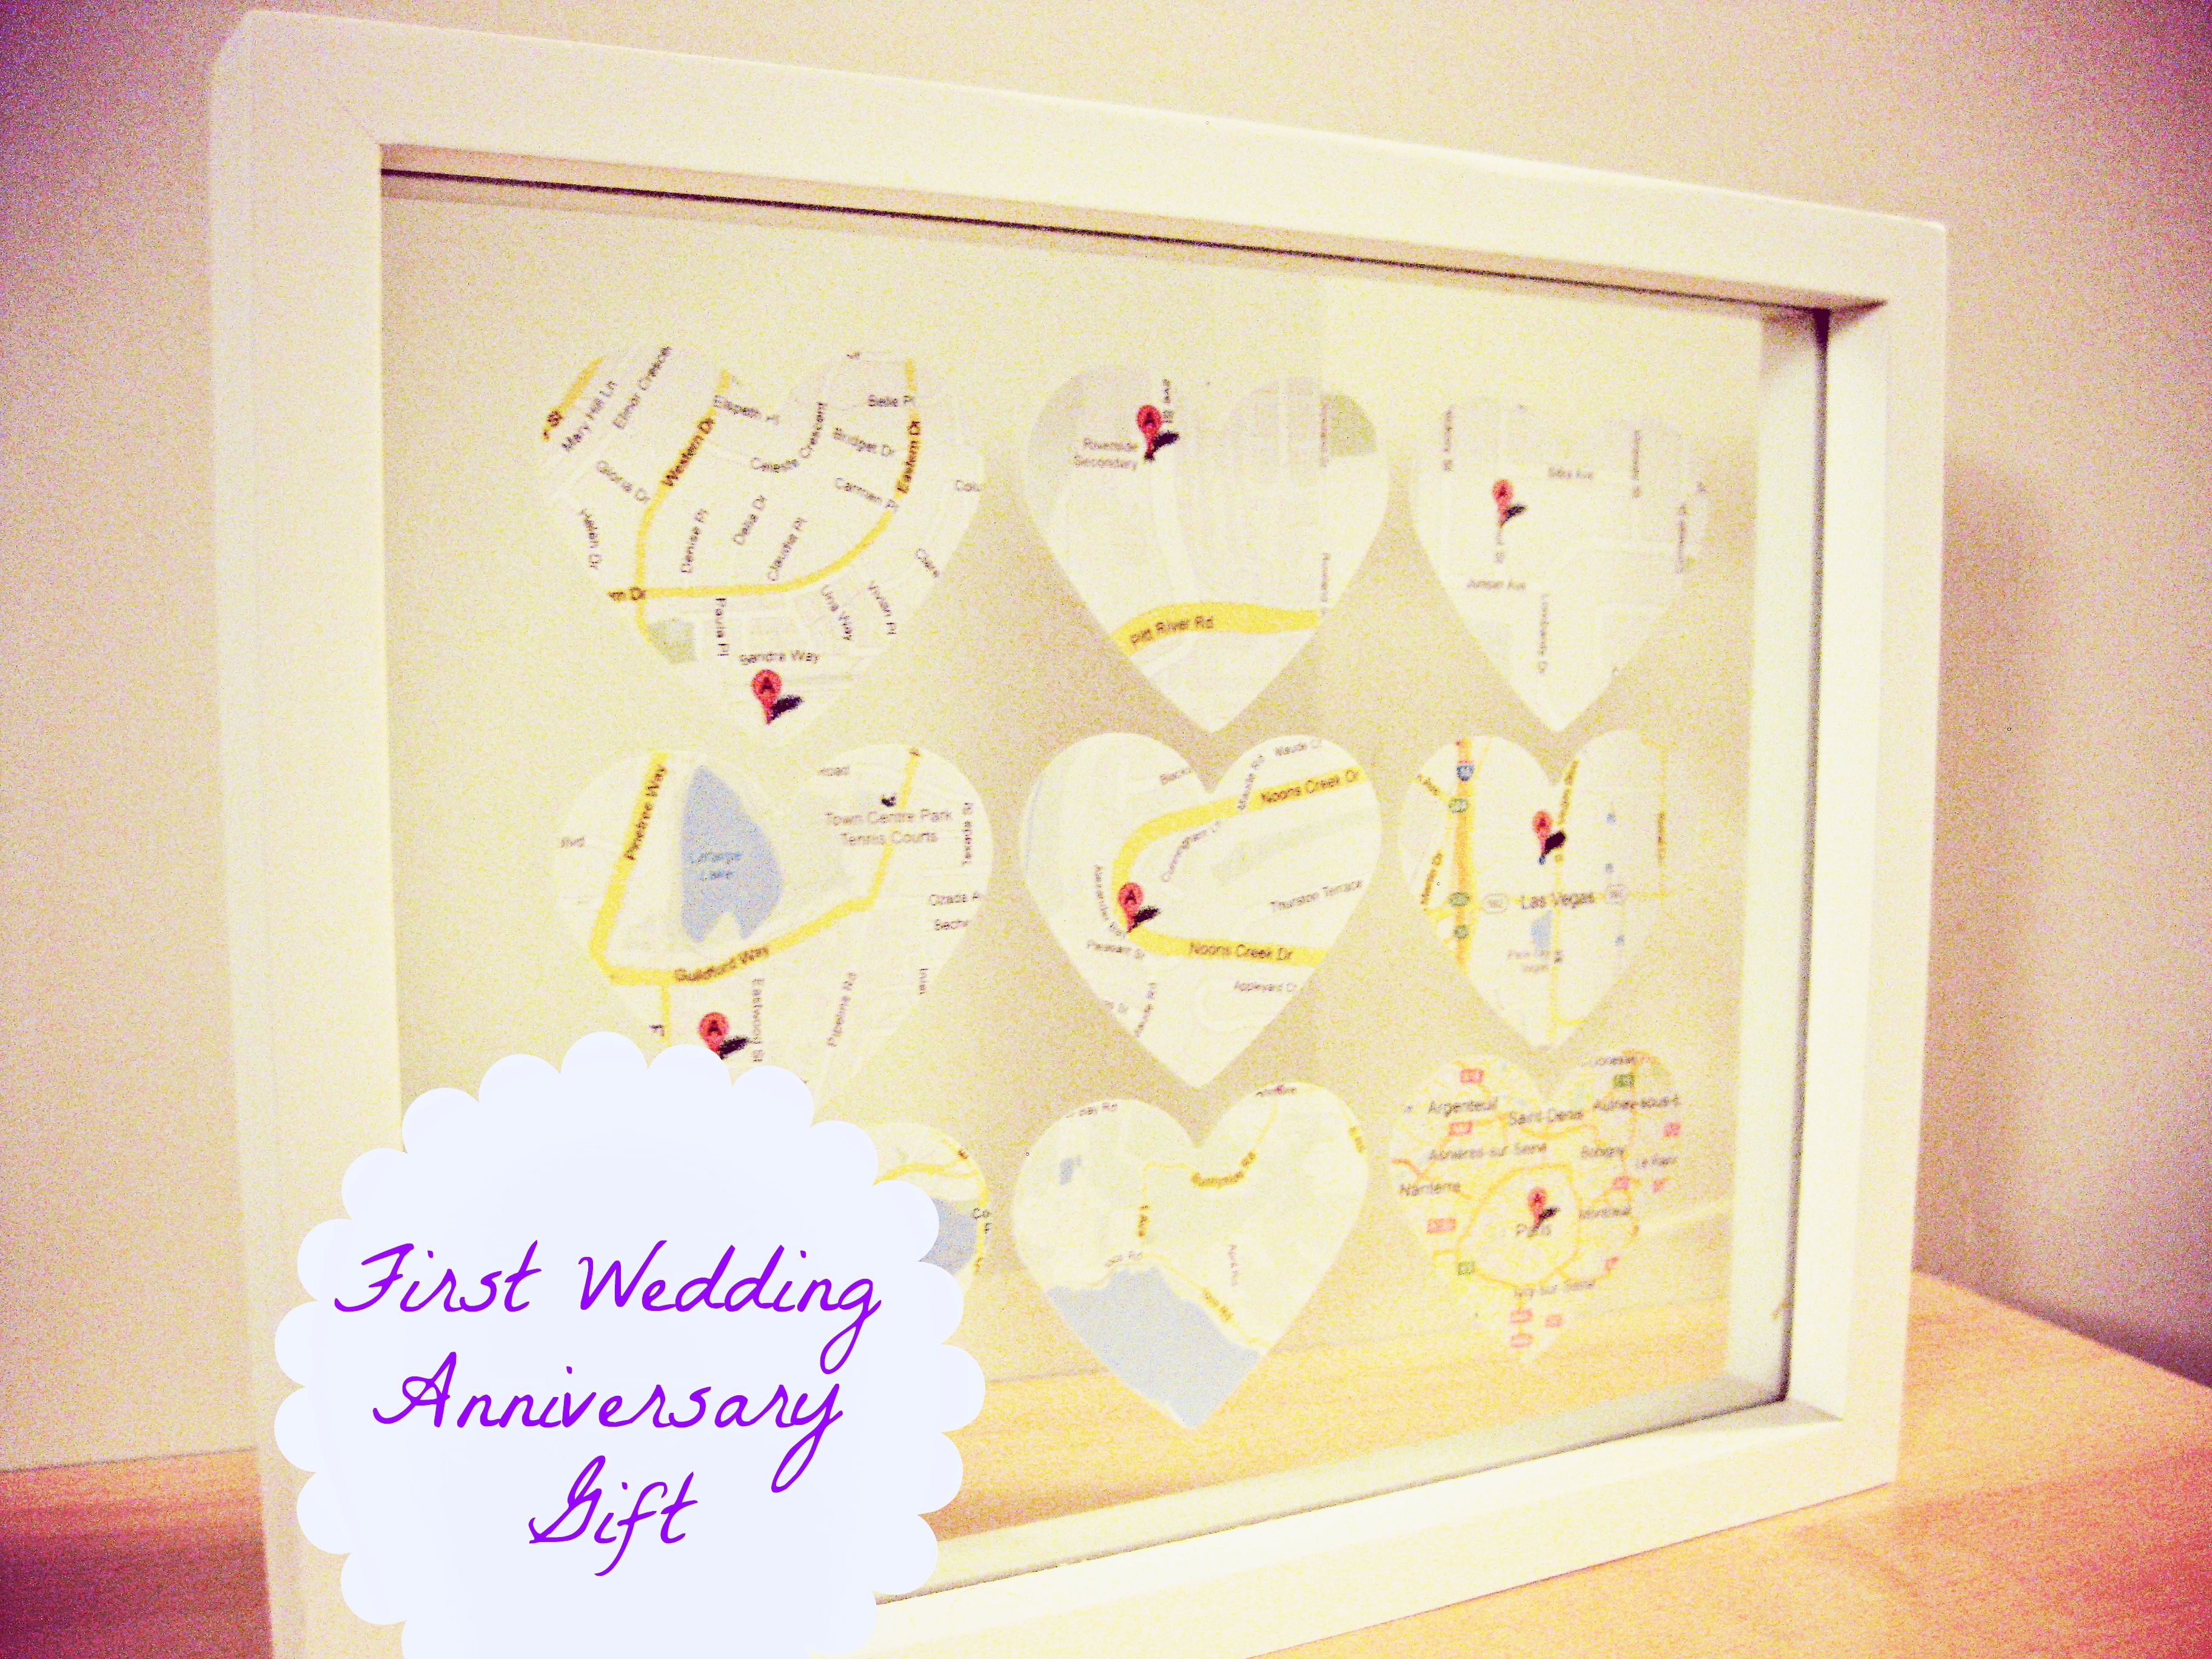 Wedding Anniversary Gifts: Homemade Wedding Anniversary Gifts For ...